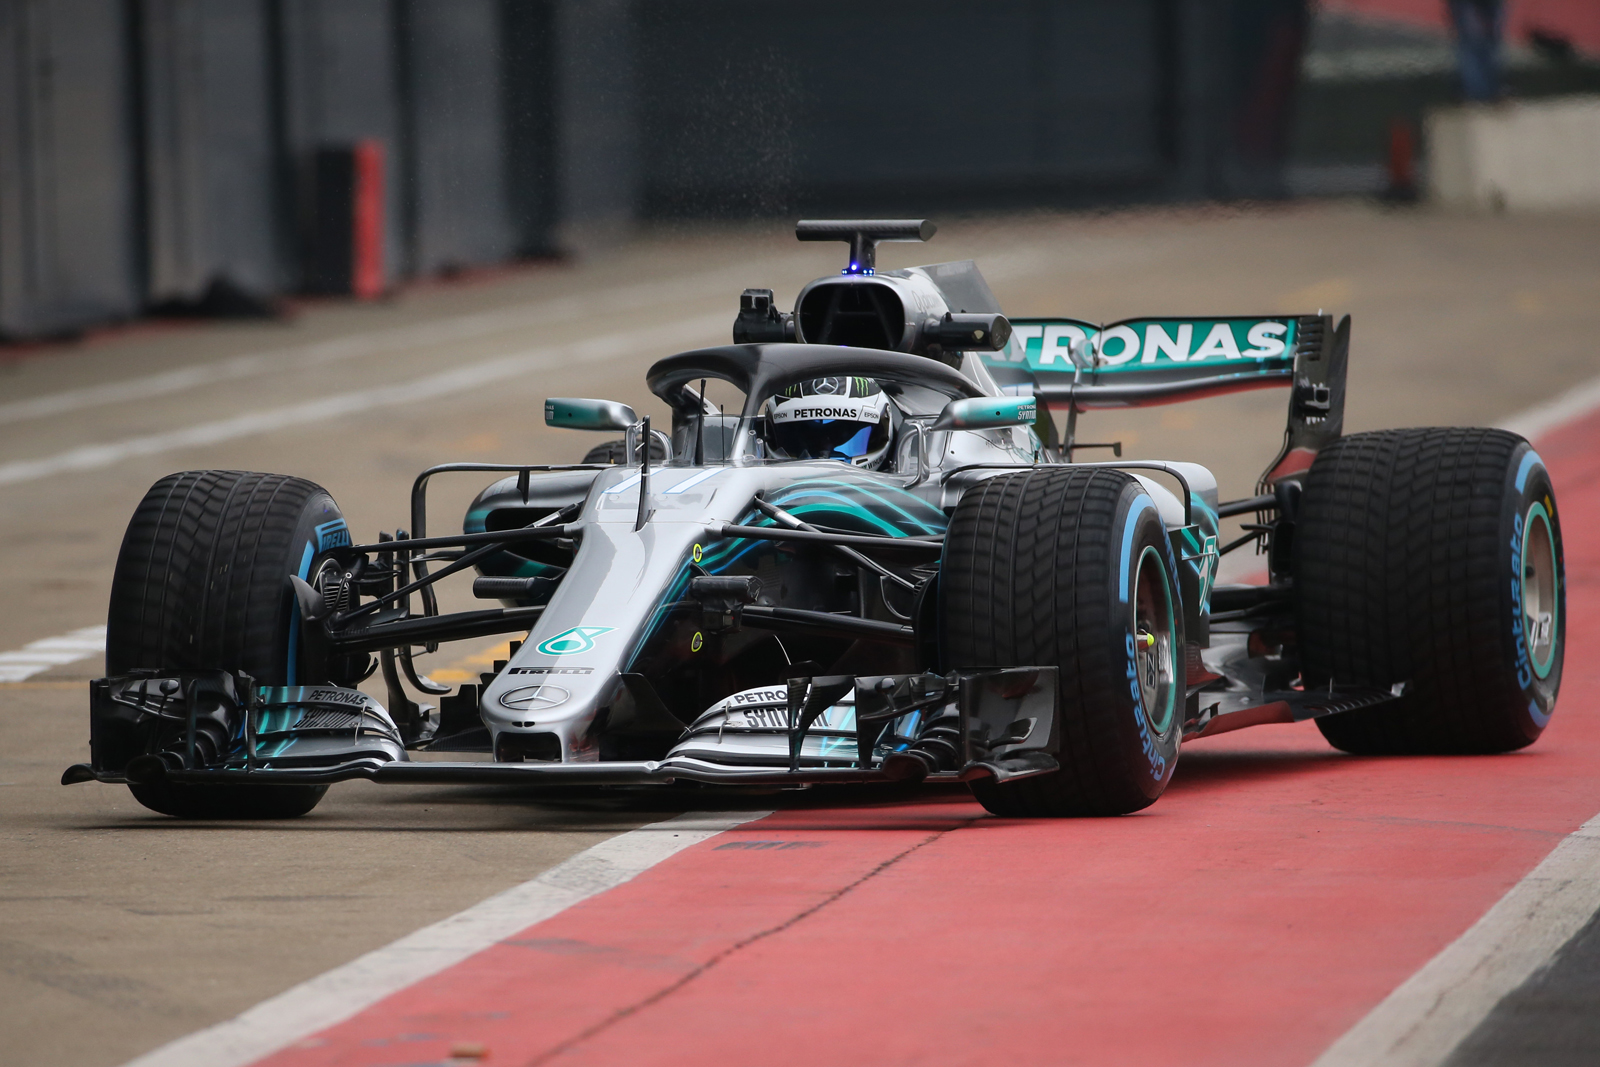 New Lambo 2019 >> The Latest Mercedes-AMG F1 Car Looks Absolutely Bonkers » AutoGuide.com News